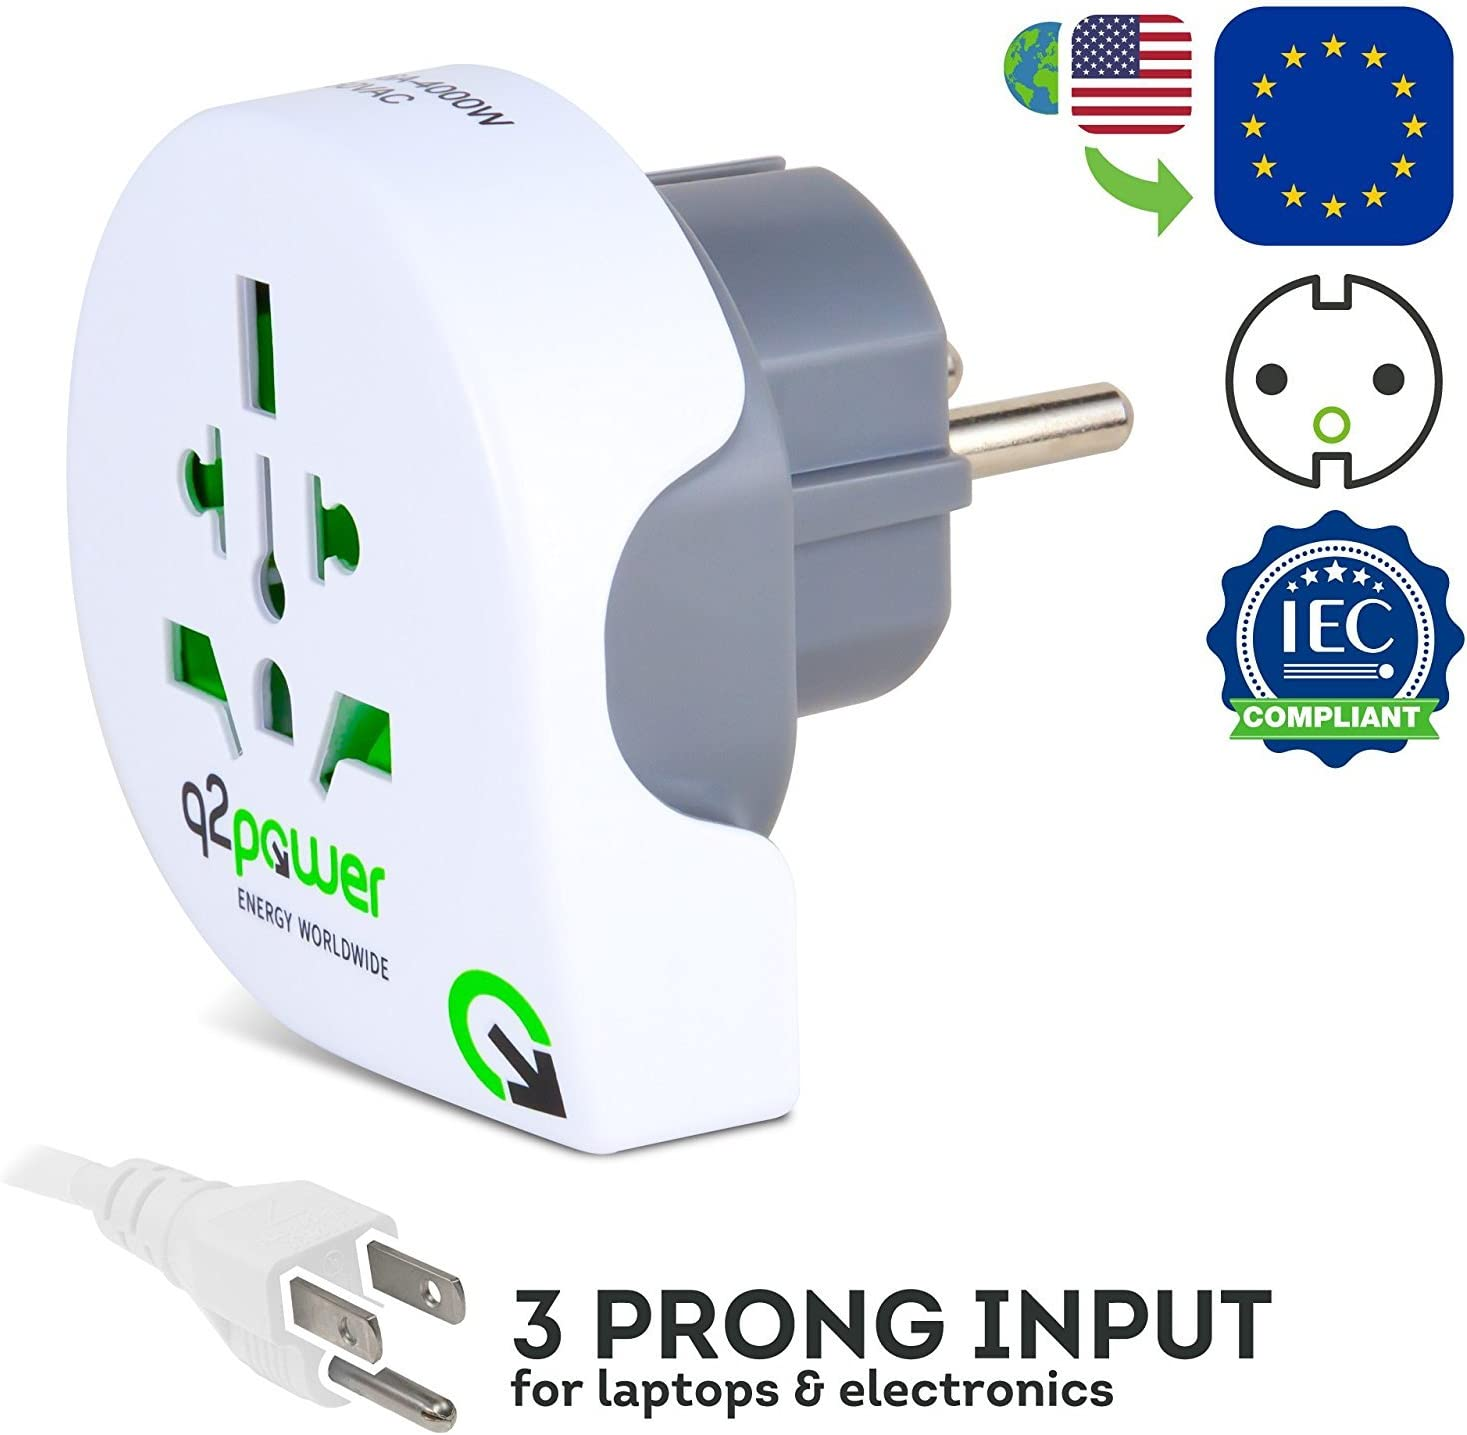 Q2 Power World to Italy Travel Adapter